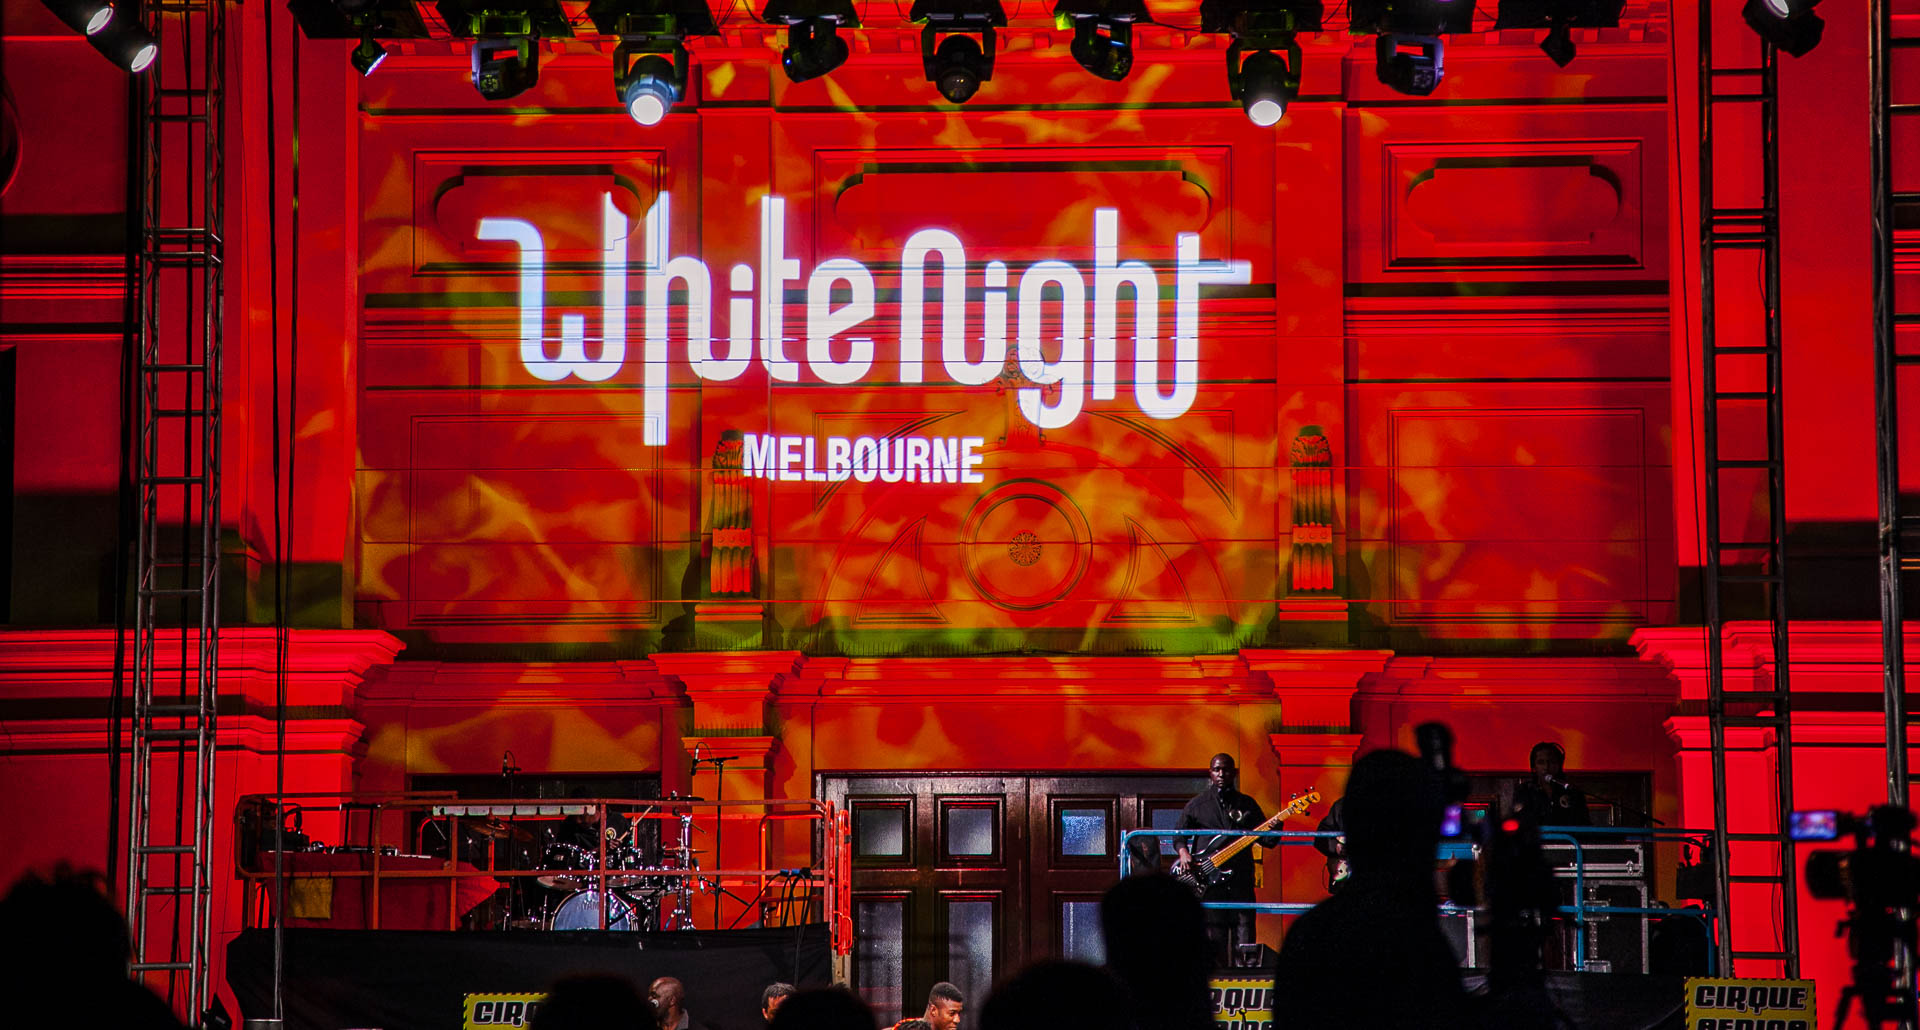 Melbourne White Night 2016 - Time-lapse and Photos